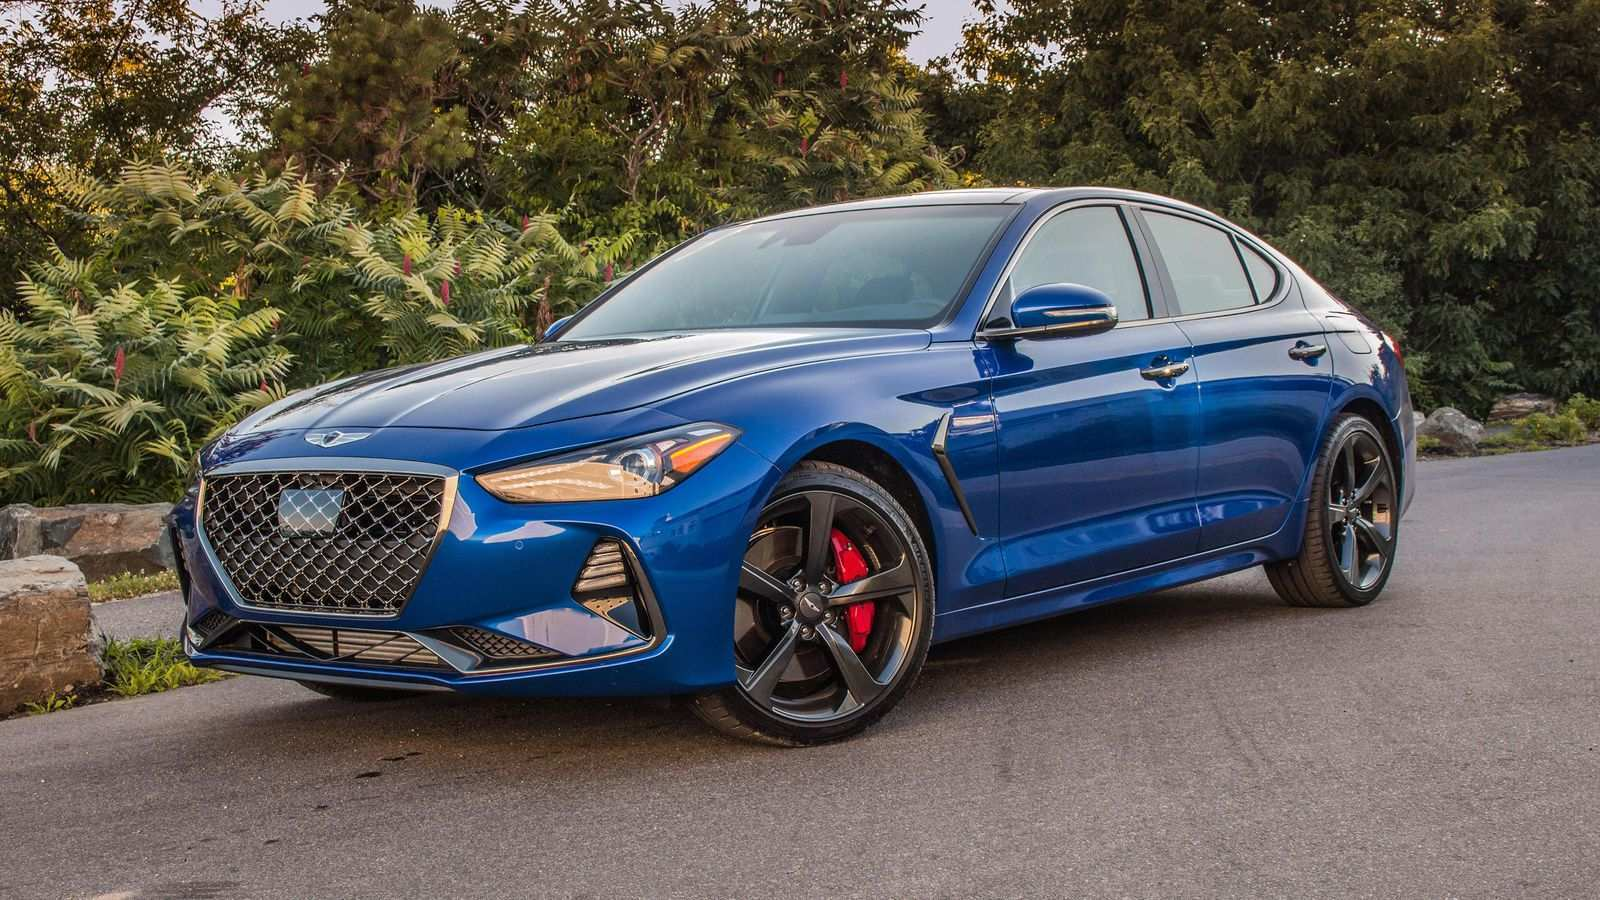 39 Gallery of 2019 Genesis G70 Price Specs and Review by 2019 Genesis G70 Price